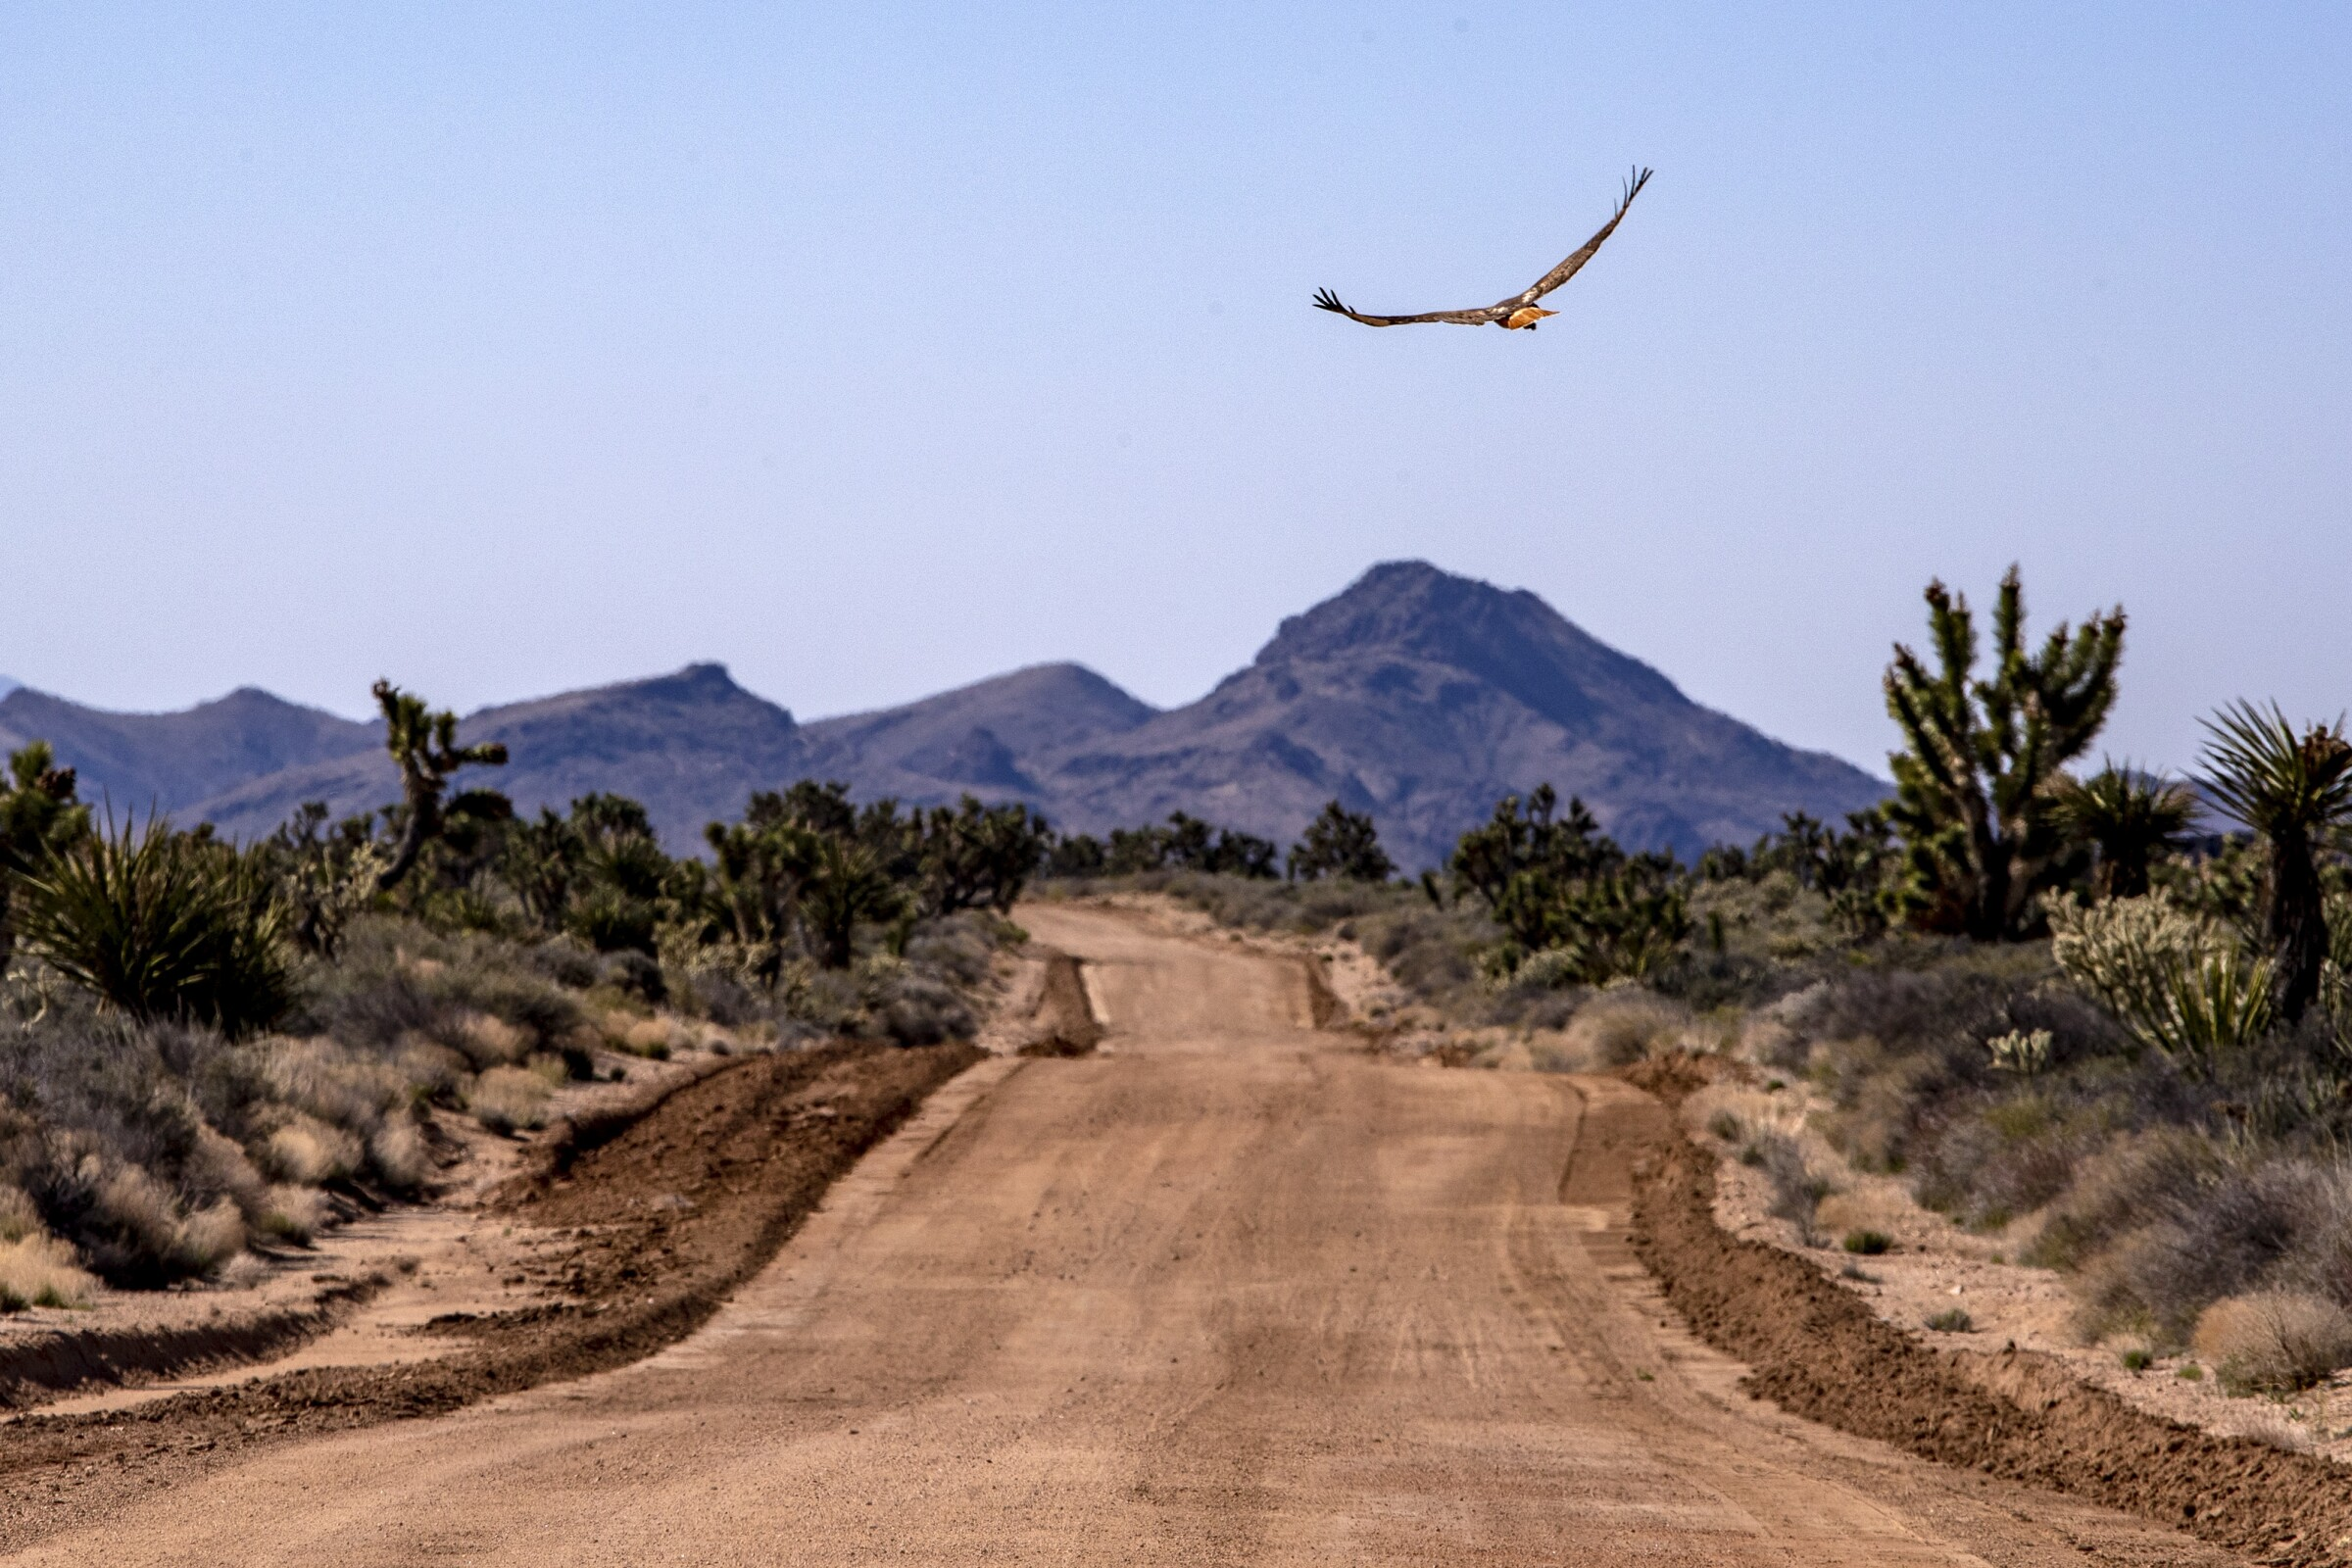 A red-tailed hawk flies over the historic Mojave Road in the Mojave National Preserve